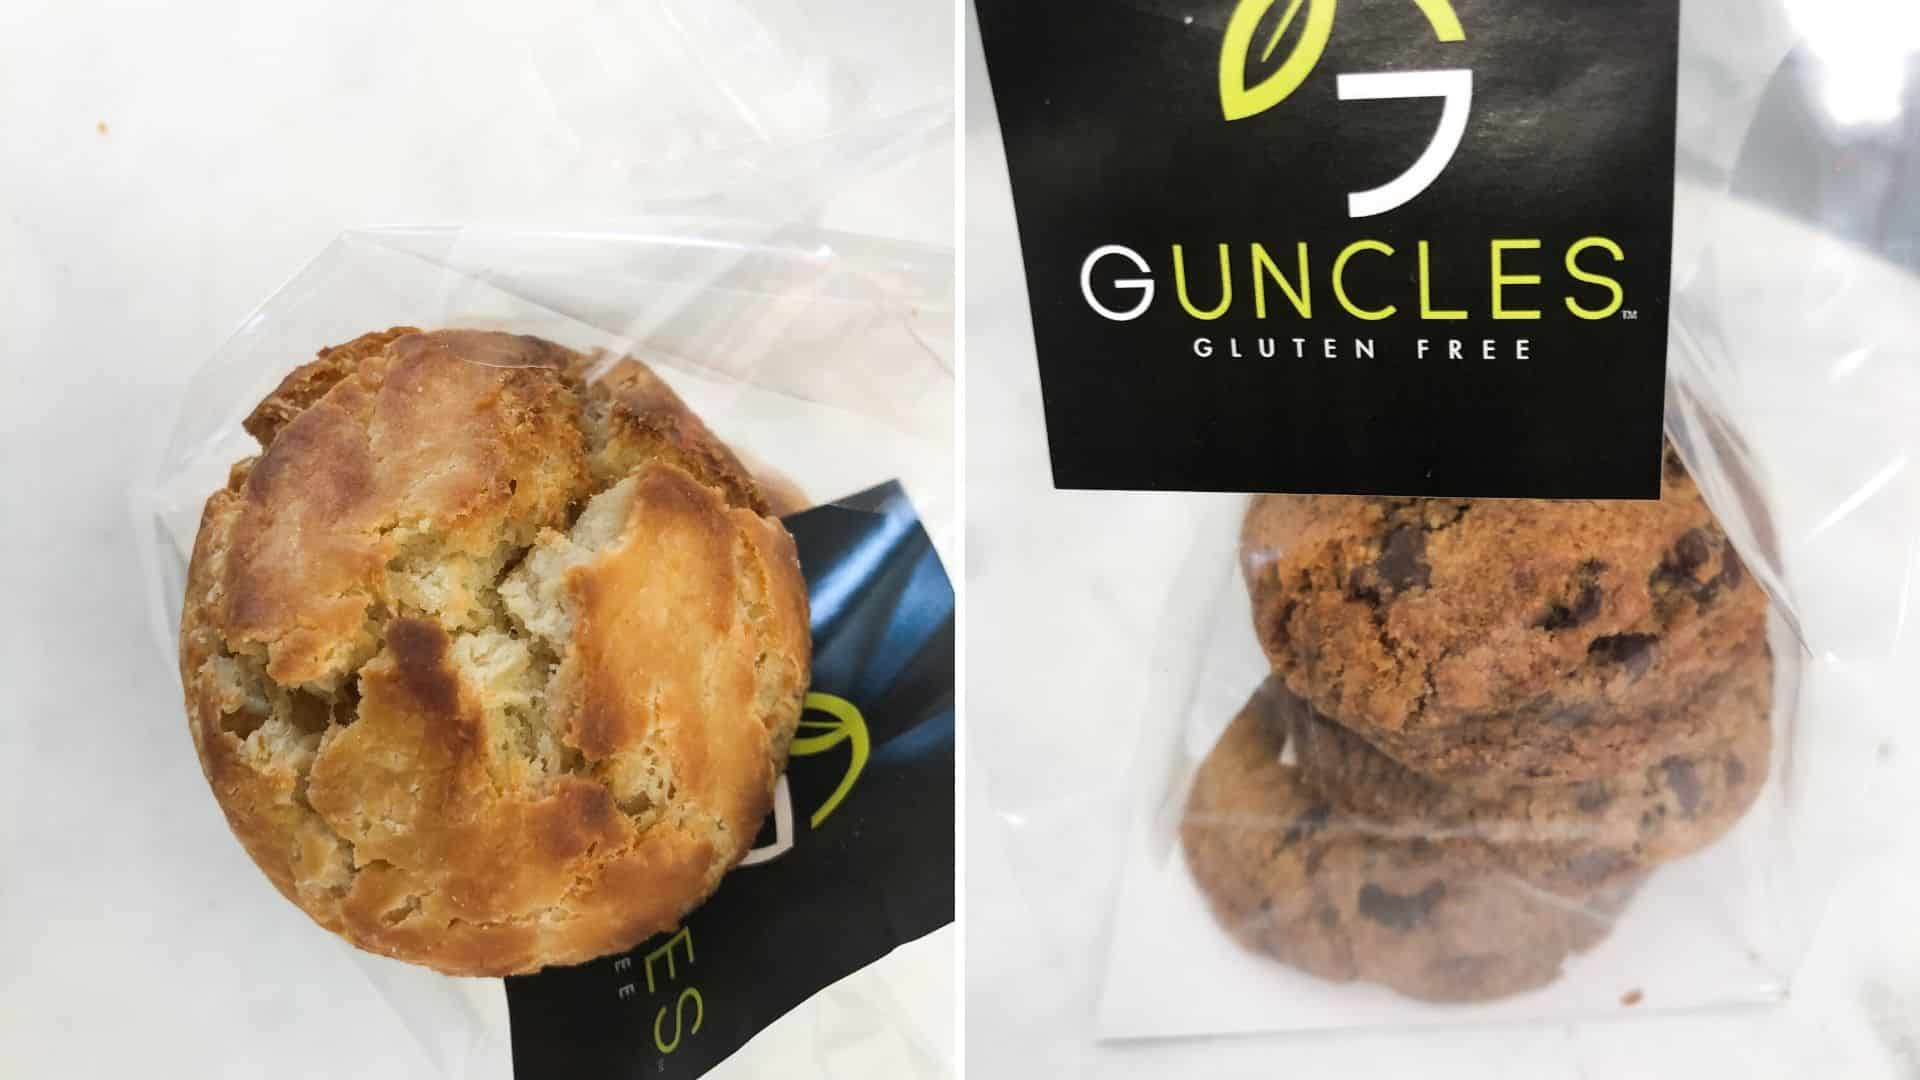 Buscuits and Chocolate Chip Toffee Cookies at Guncles